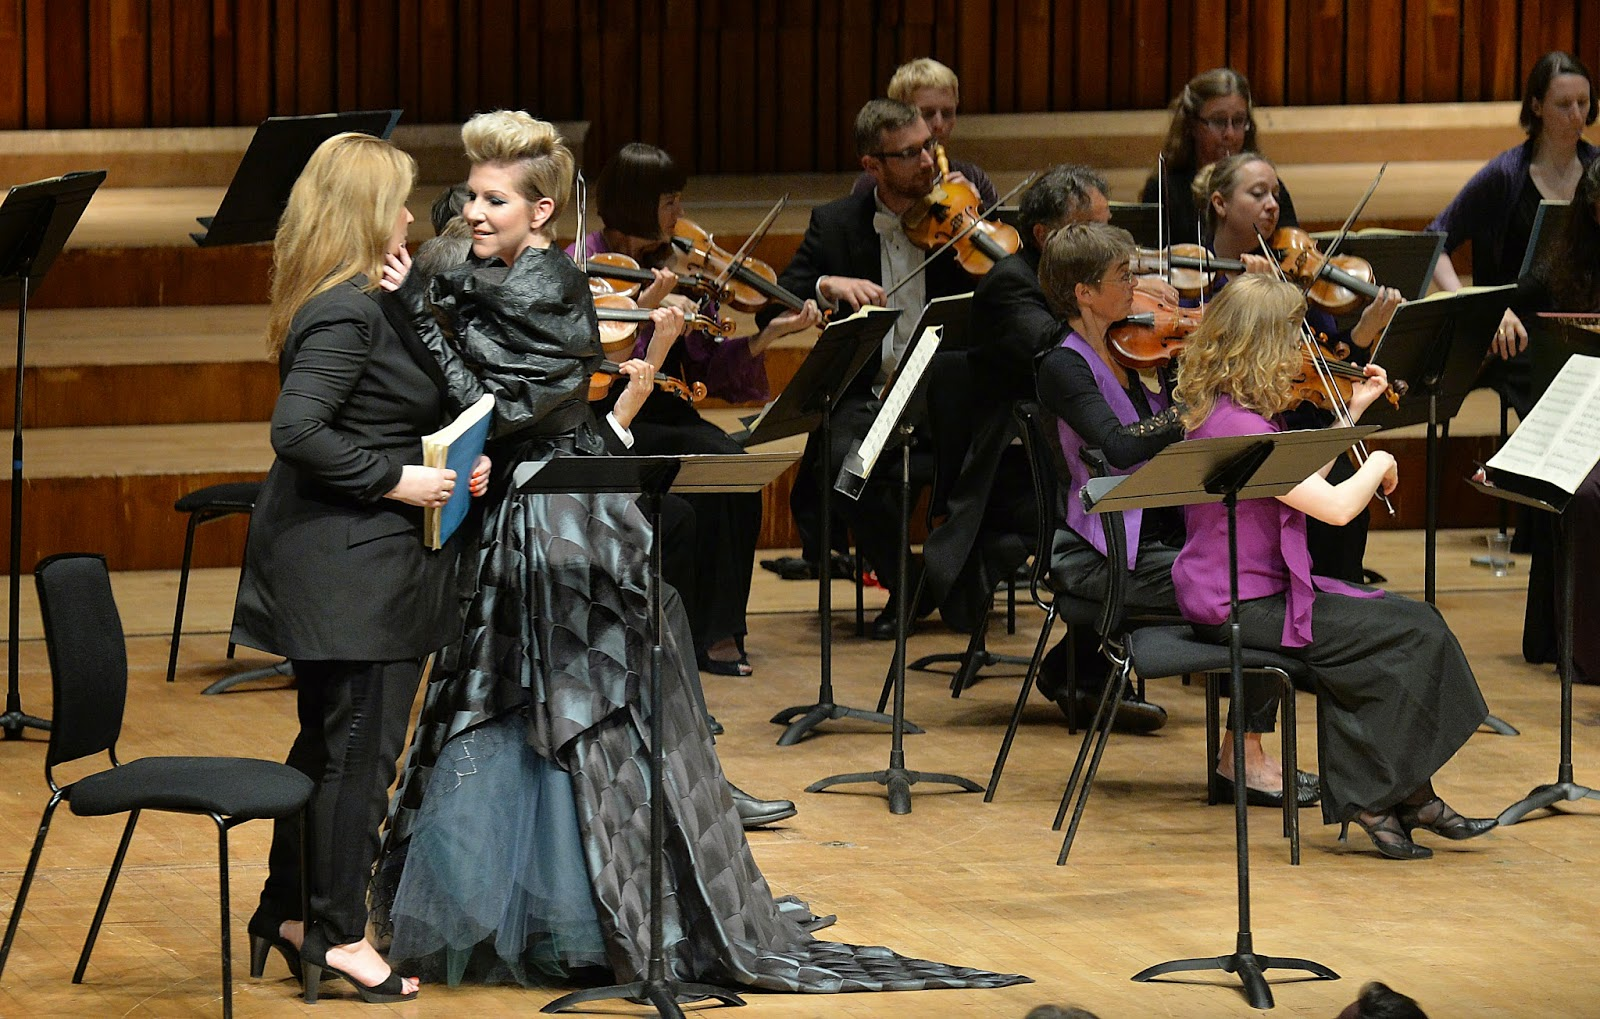 Joyce DiDonato and Alice Coote in Act 1 of Handel's Alcina at the Barbican with the English Concert - photo credit Mark Allan/Barbican